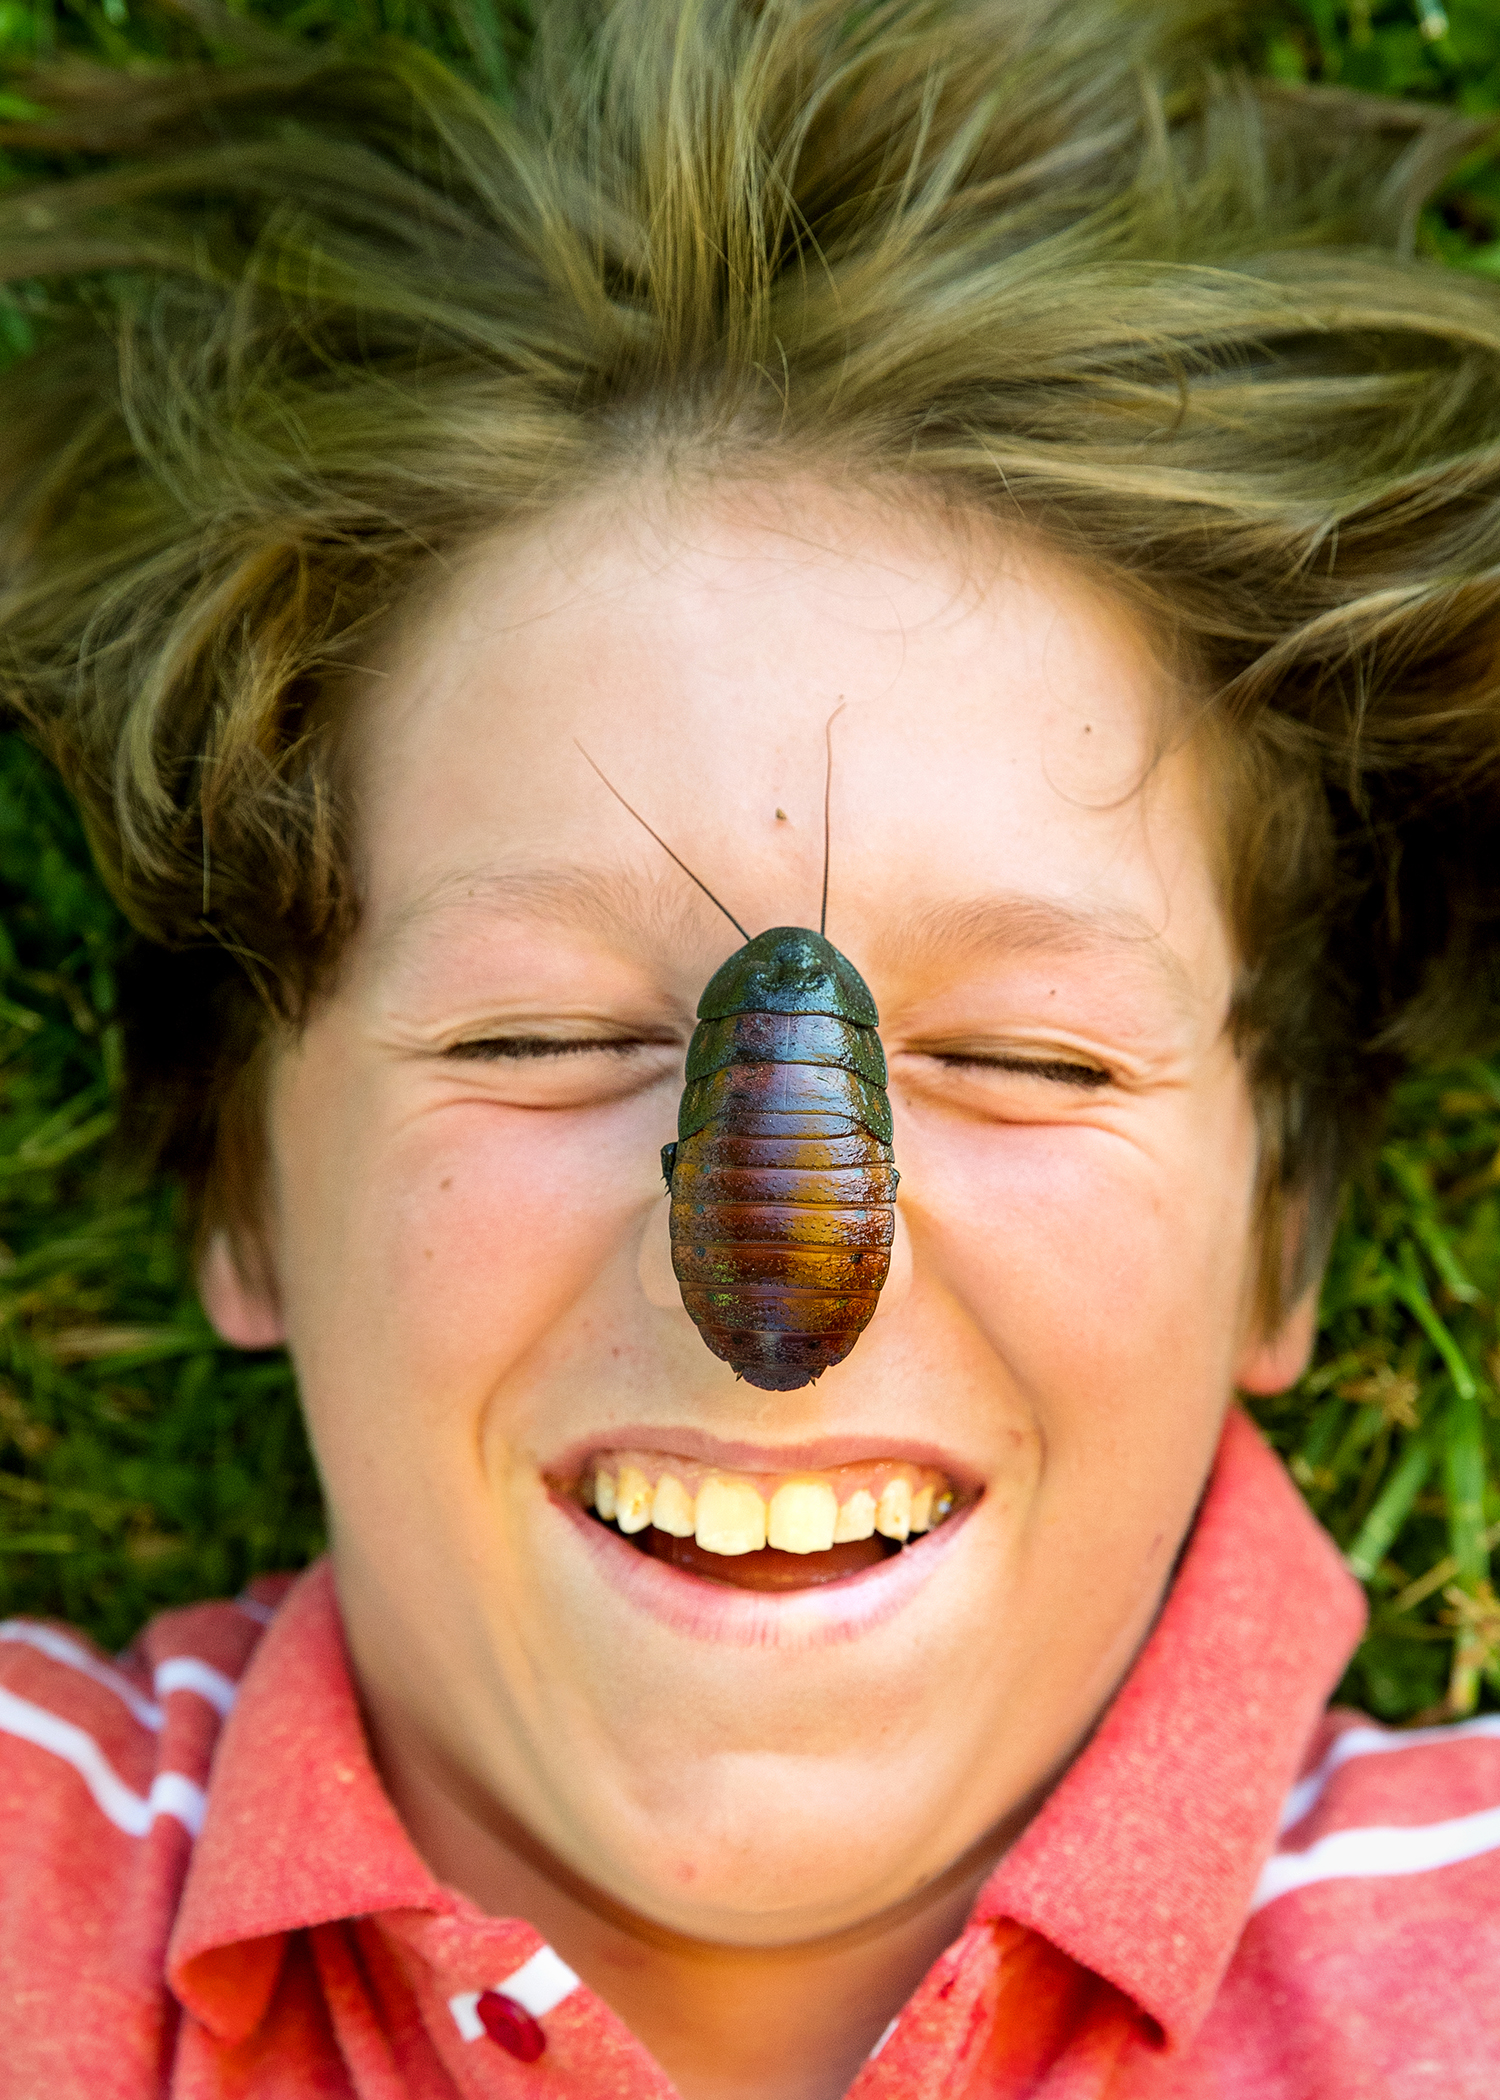 Jeremy Renfro of Loami winces as after a Madagascar Hissing Cockroach was placed on his nose at the Wild Time Exotics booth during the Loami Fourth of July Celebration Saturday, July 7, 2018. The large, wingless cockroach is one of the largest species and can reach between two and three inches in length. [Ted Schurter/The State Journal-Register]